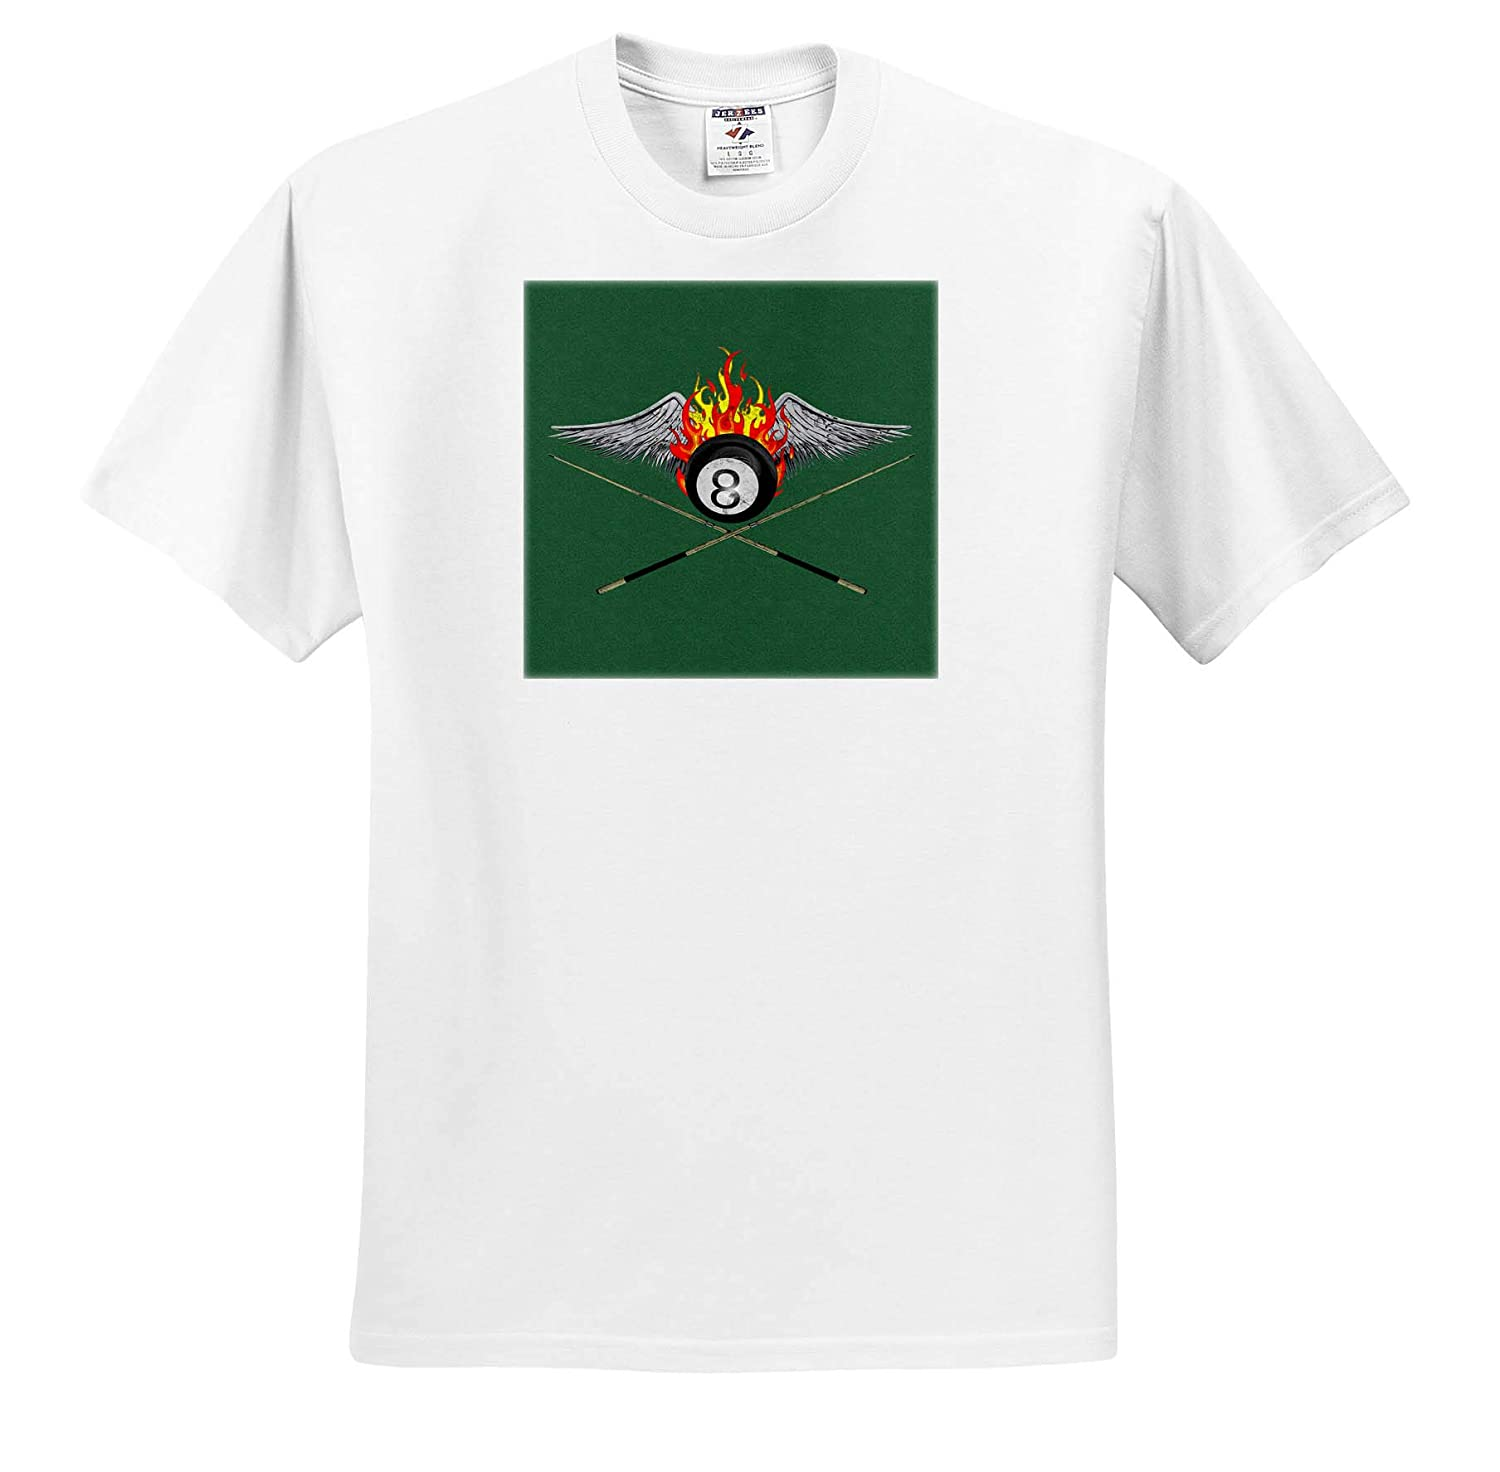 8-Ball Billiards 3dRose Macdonald Creative Studios - T-Shirts Games A Billiard Graphic for Anyone who Plays Pool